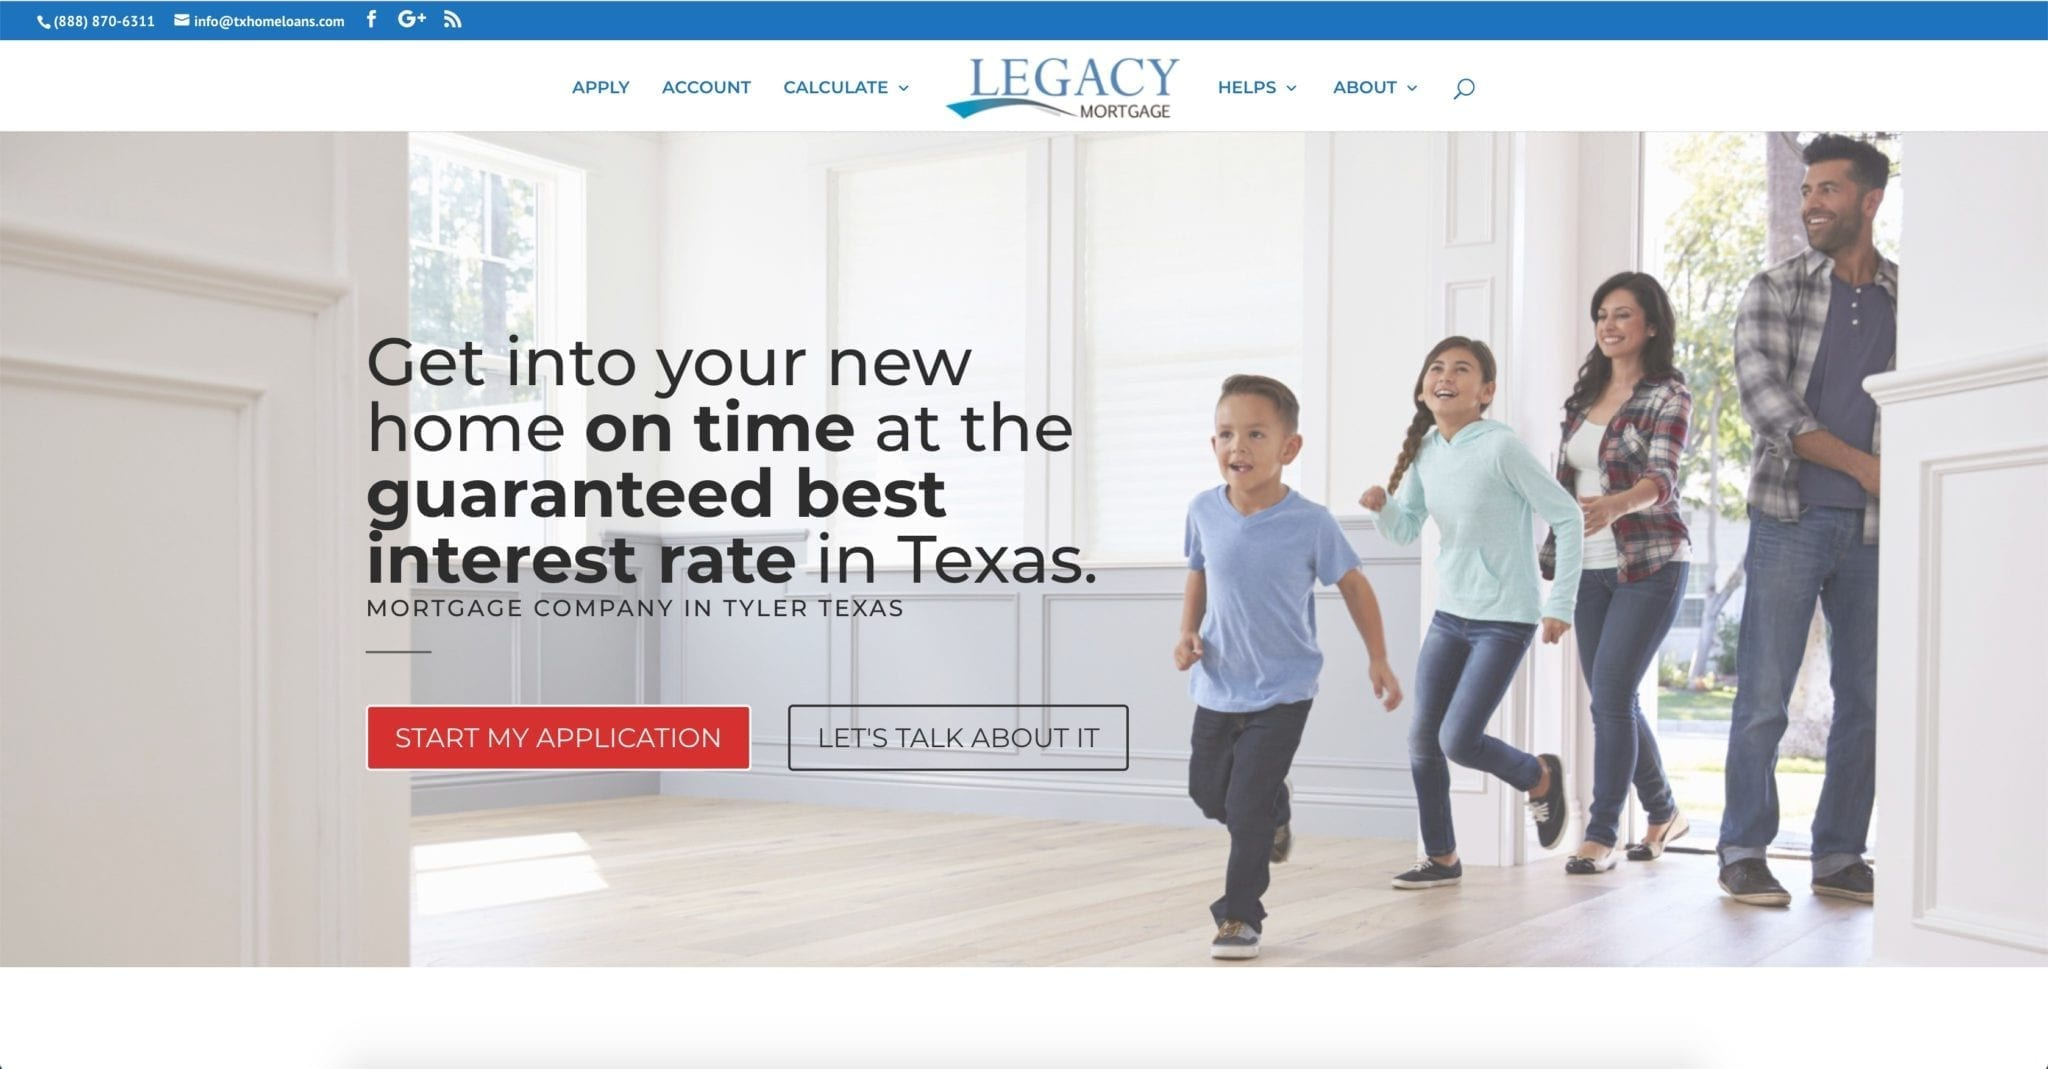 Web Design Project (Legacy Mortgage Group)